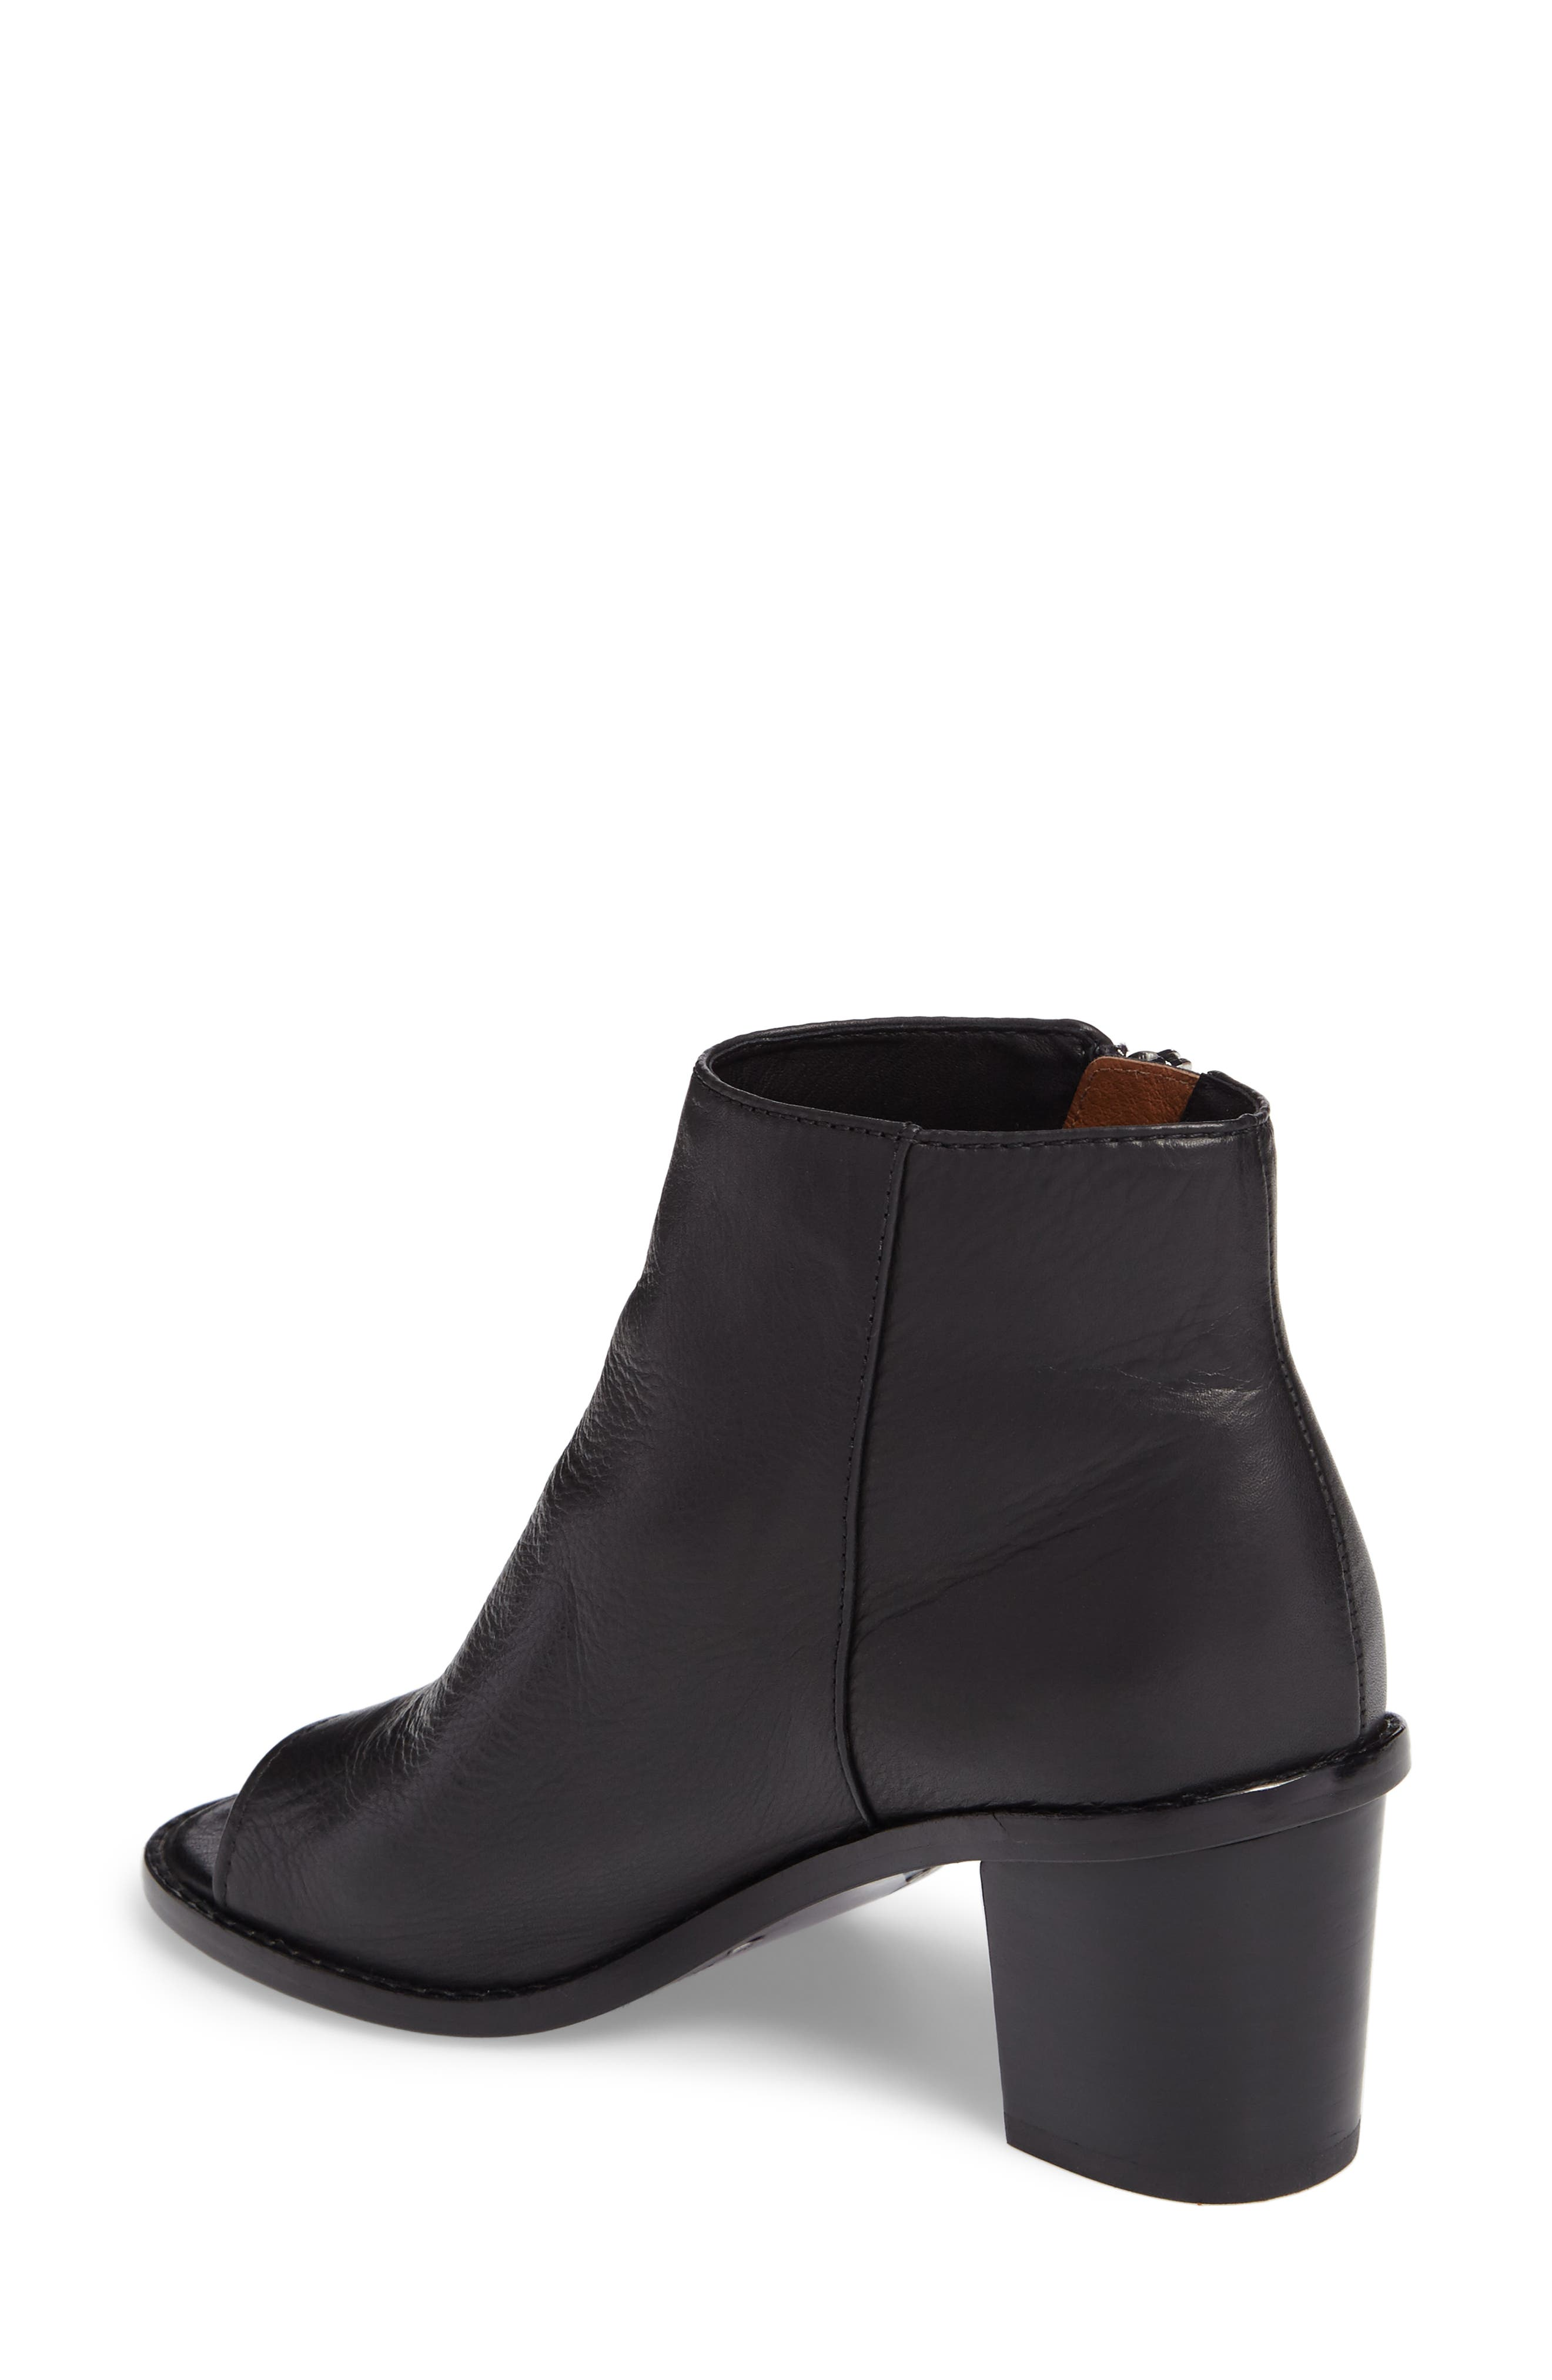 Brielle Peep Toe Bootie,                             Alternate thumbnail 2, color,                             Black